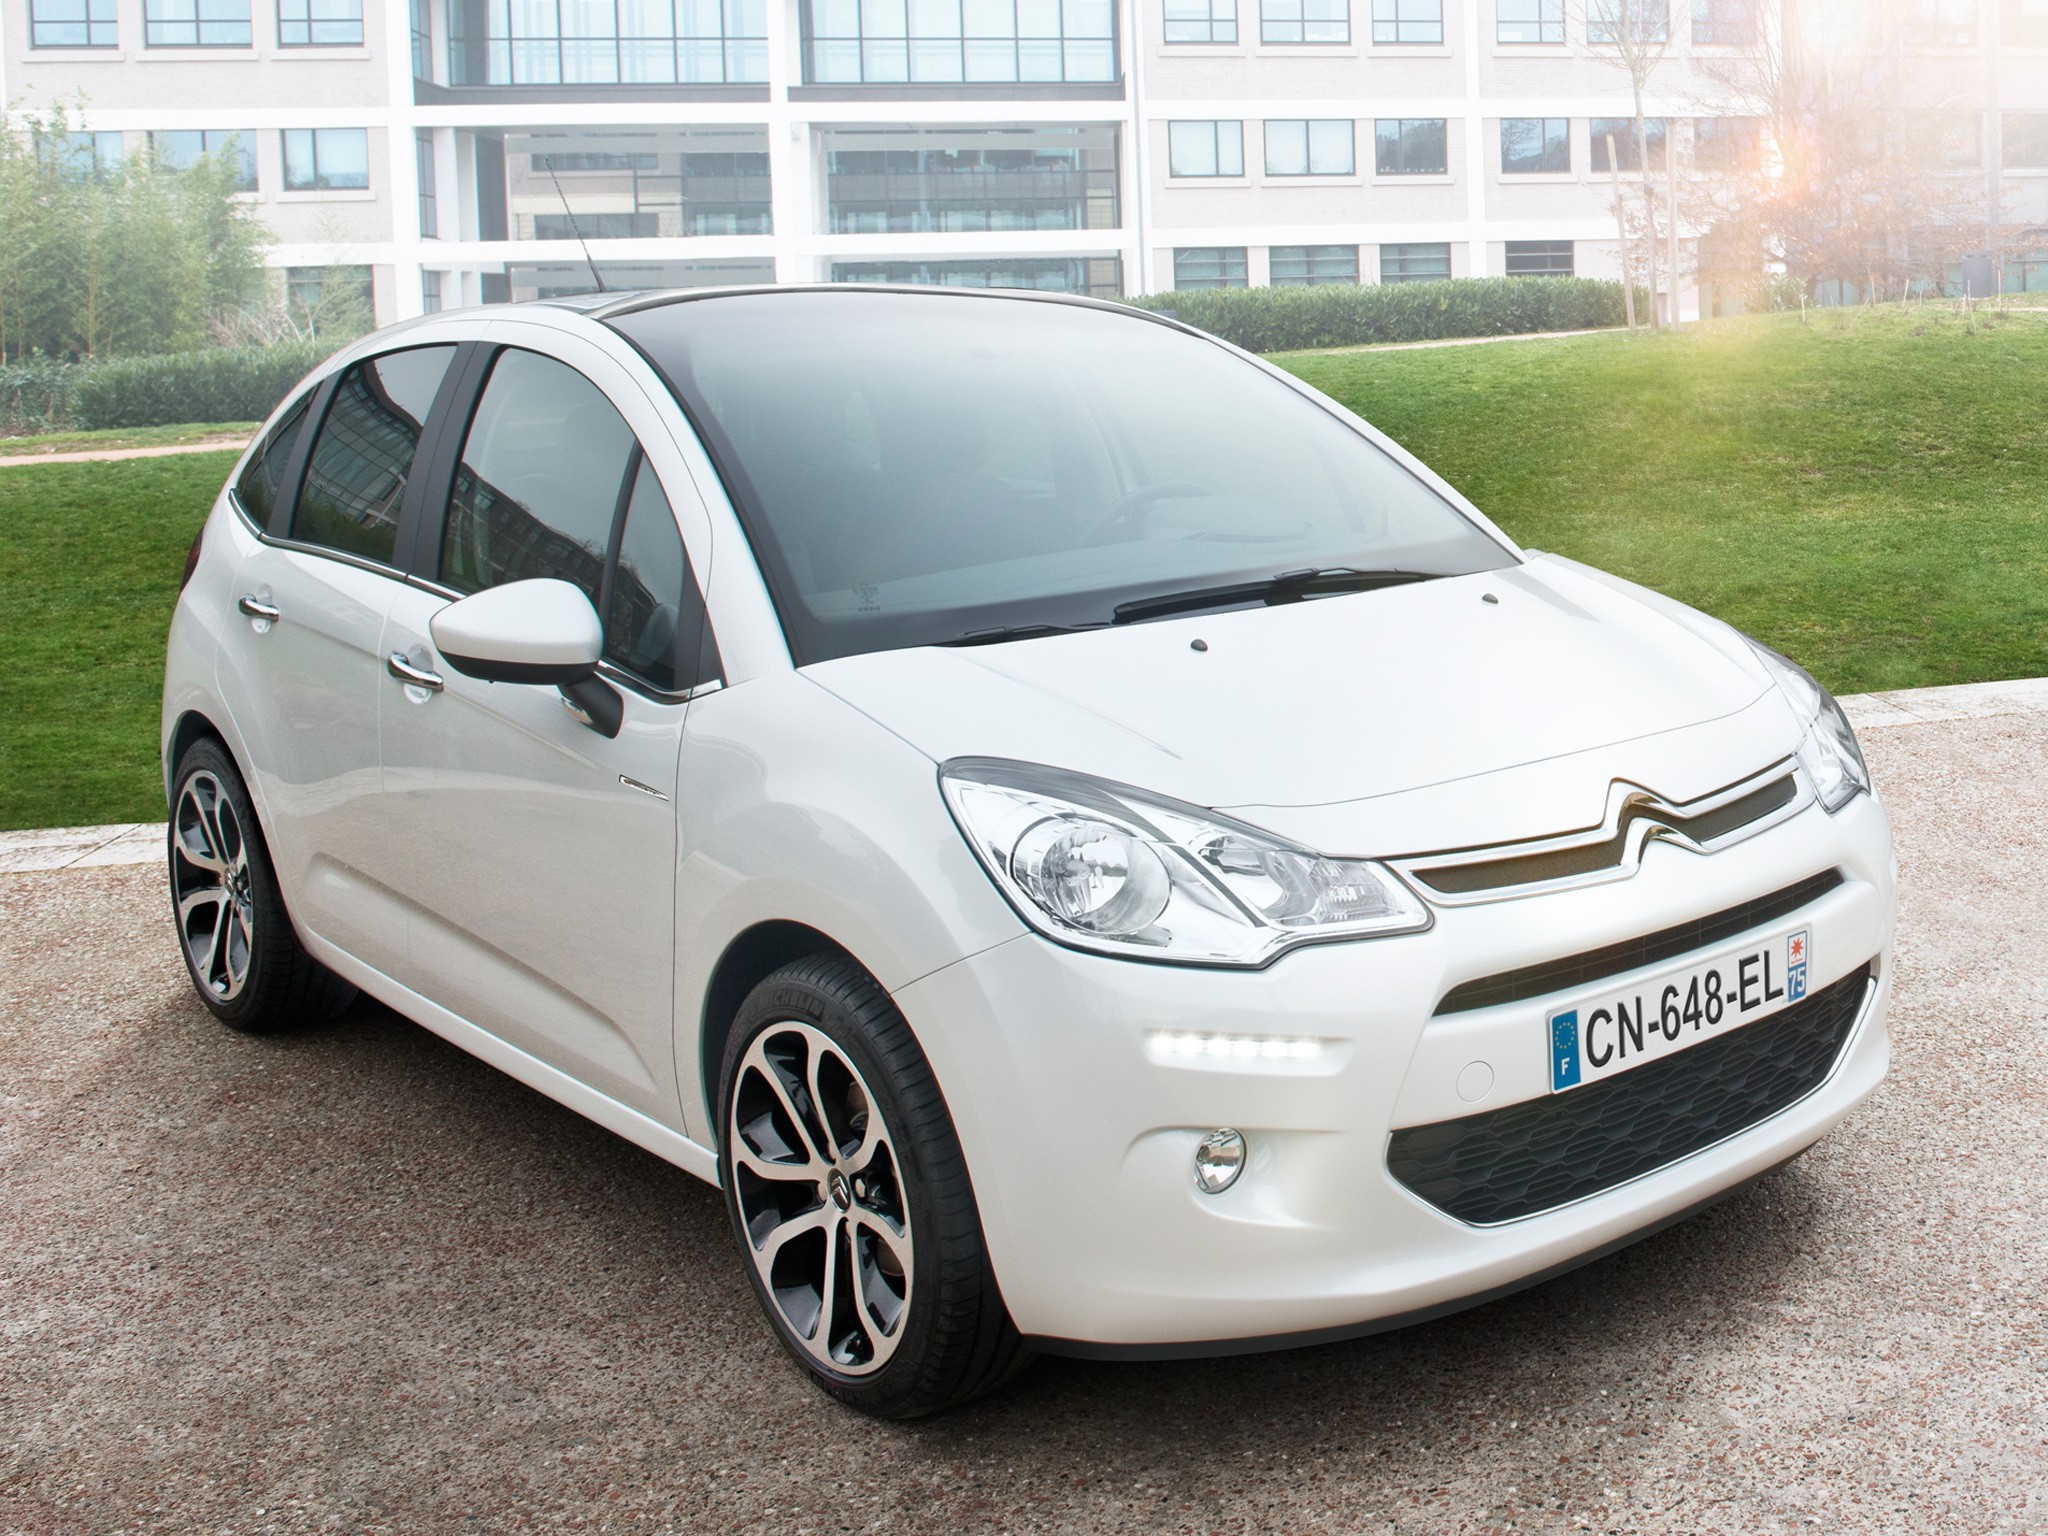 citroen c3 specs 2013 2014 2015 2016 autoevolution. Black Bedroom Furniture Sets. Home Design Ideas